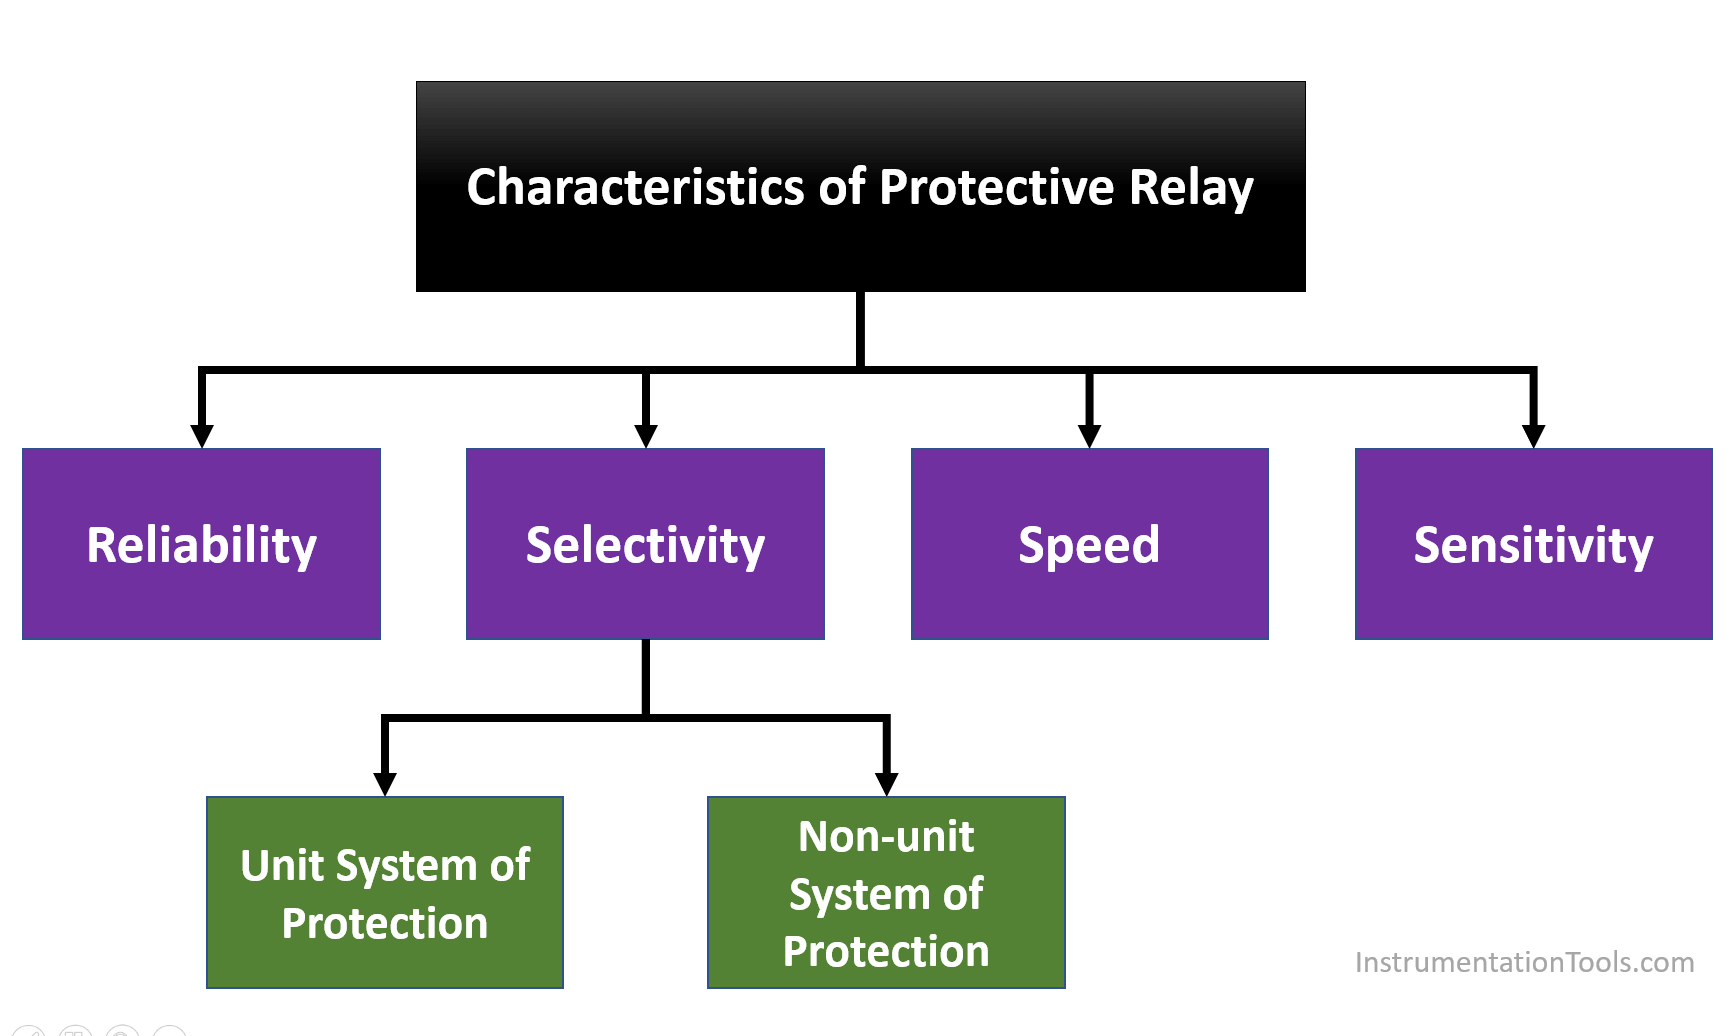 Characteristics of Protective Relay